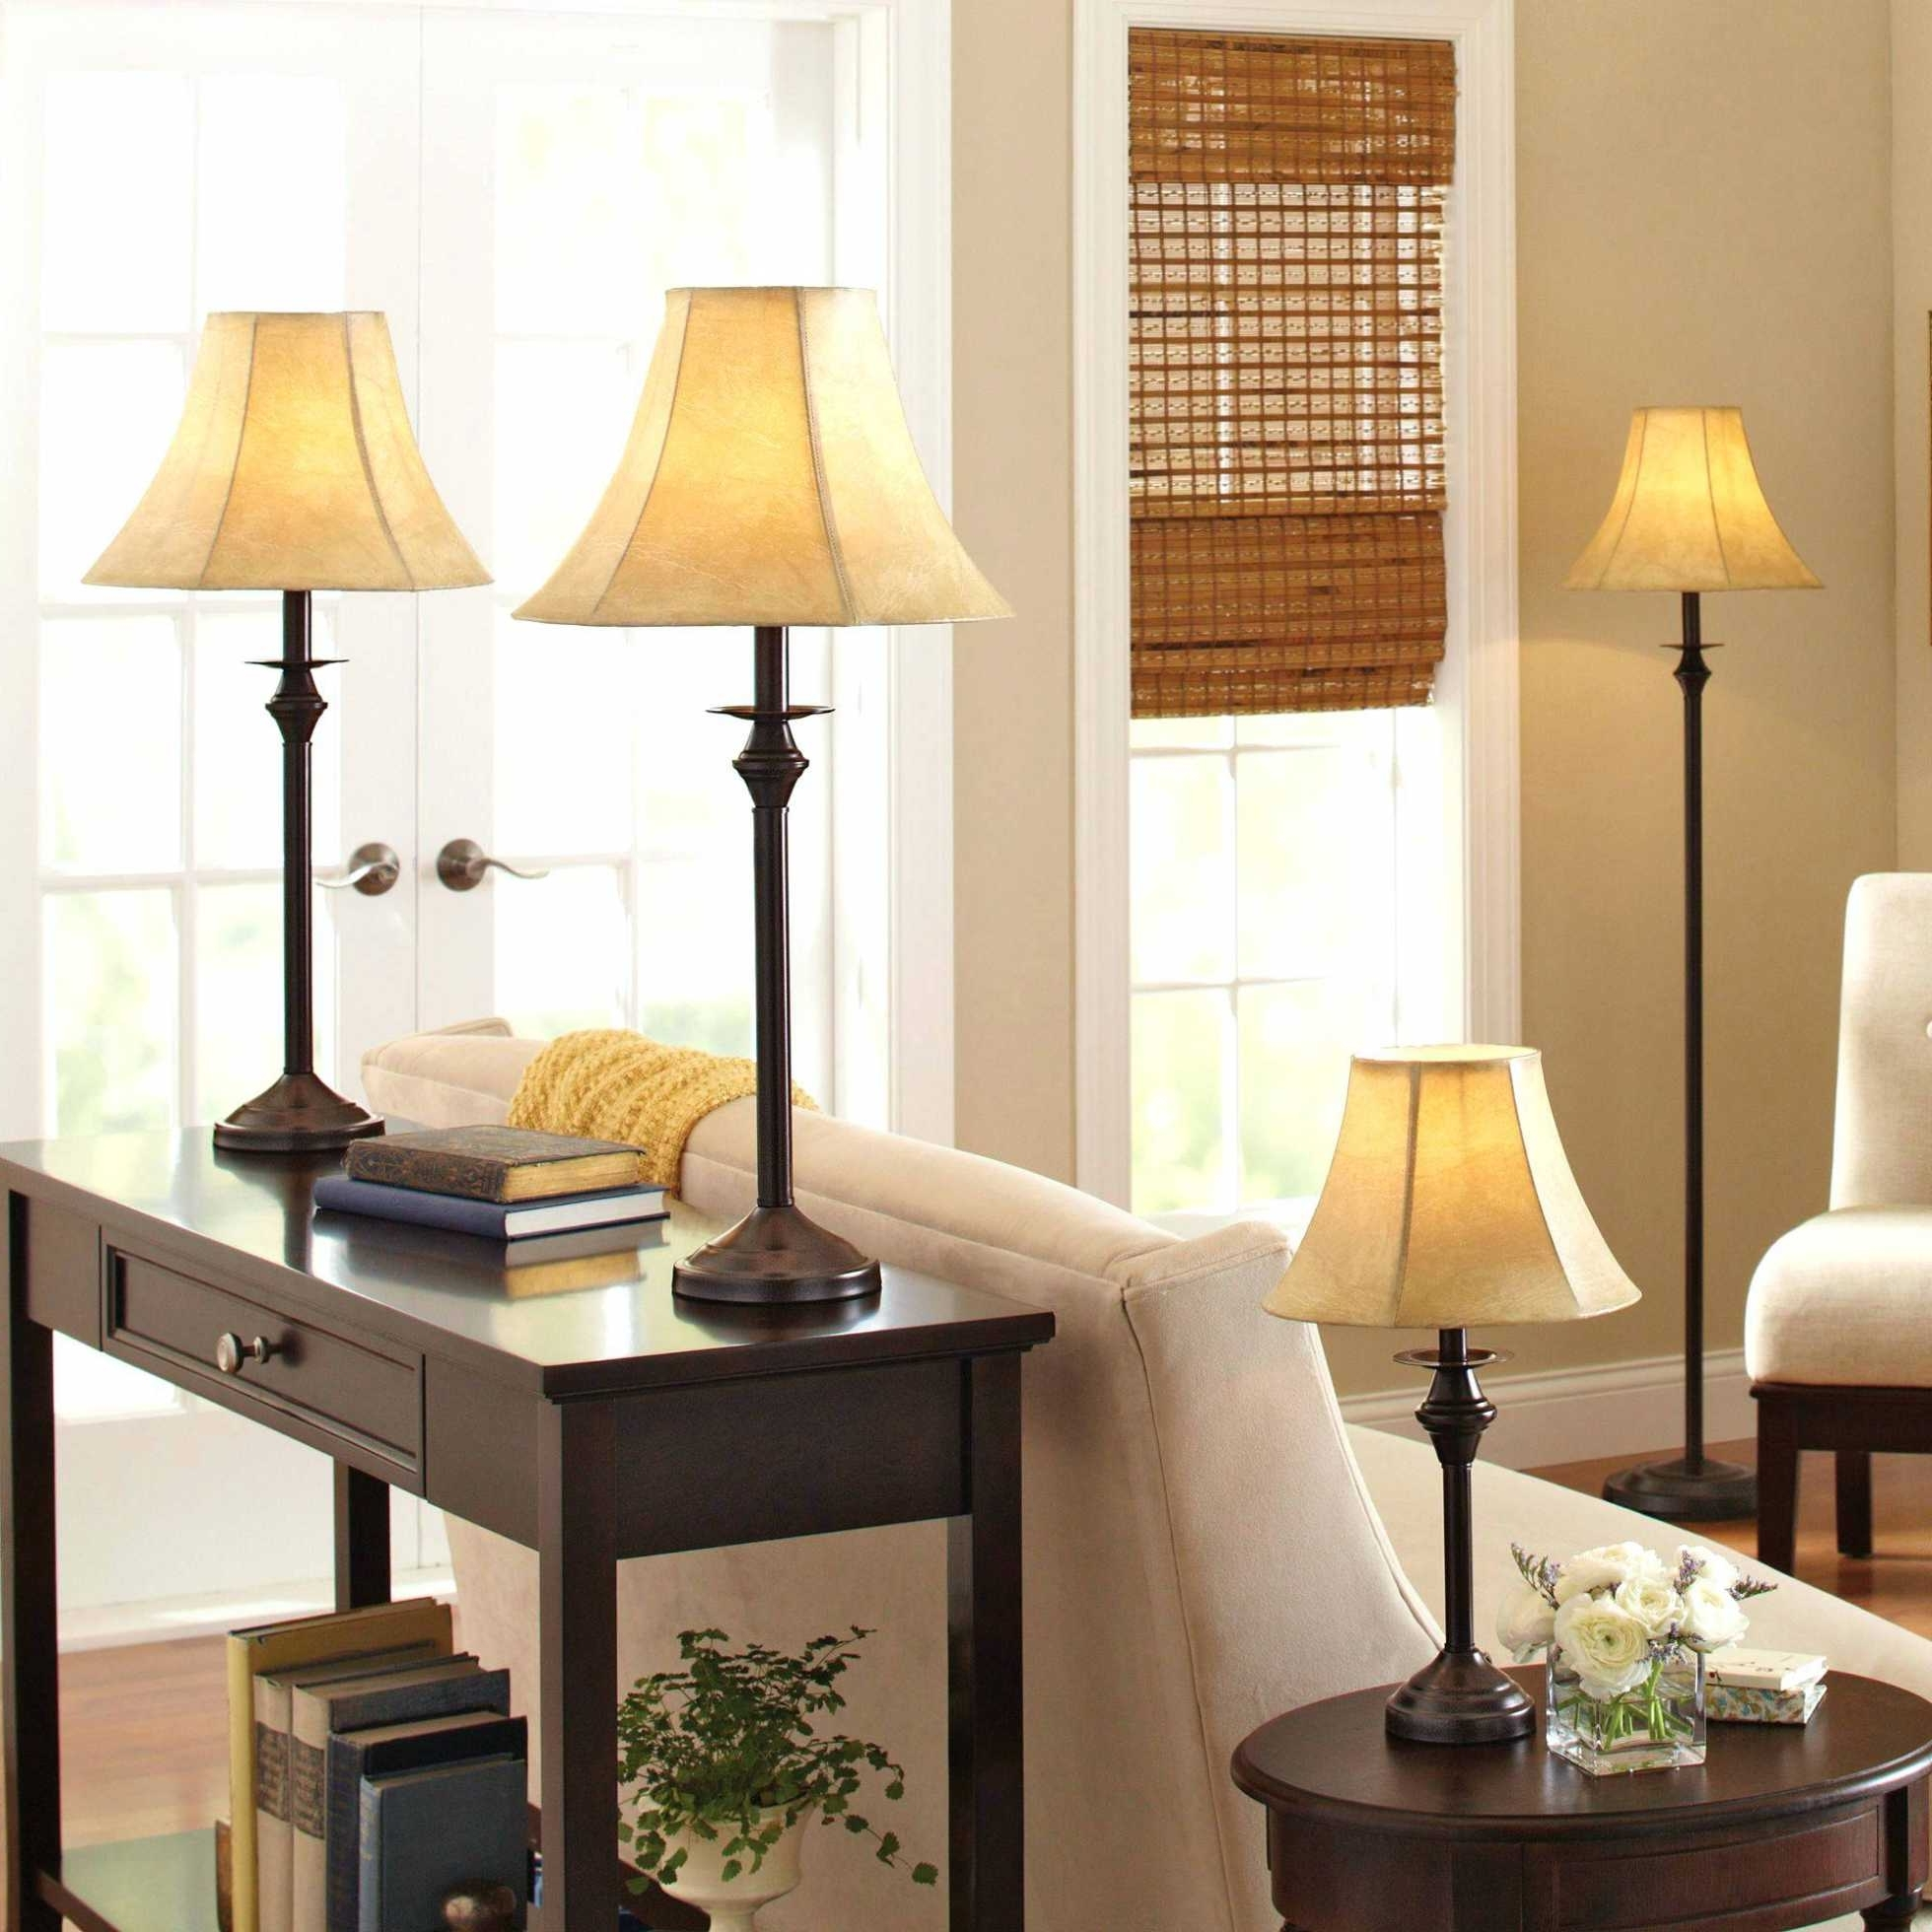 Widely Used Living Room Table Lamps Ideas Elegant Ideas Collection Table Lamps Intended For Houzz Living Room Table Lamps (View 15 of 15)